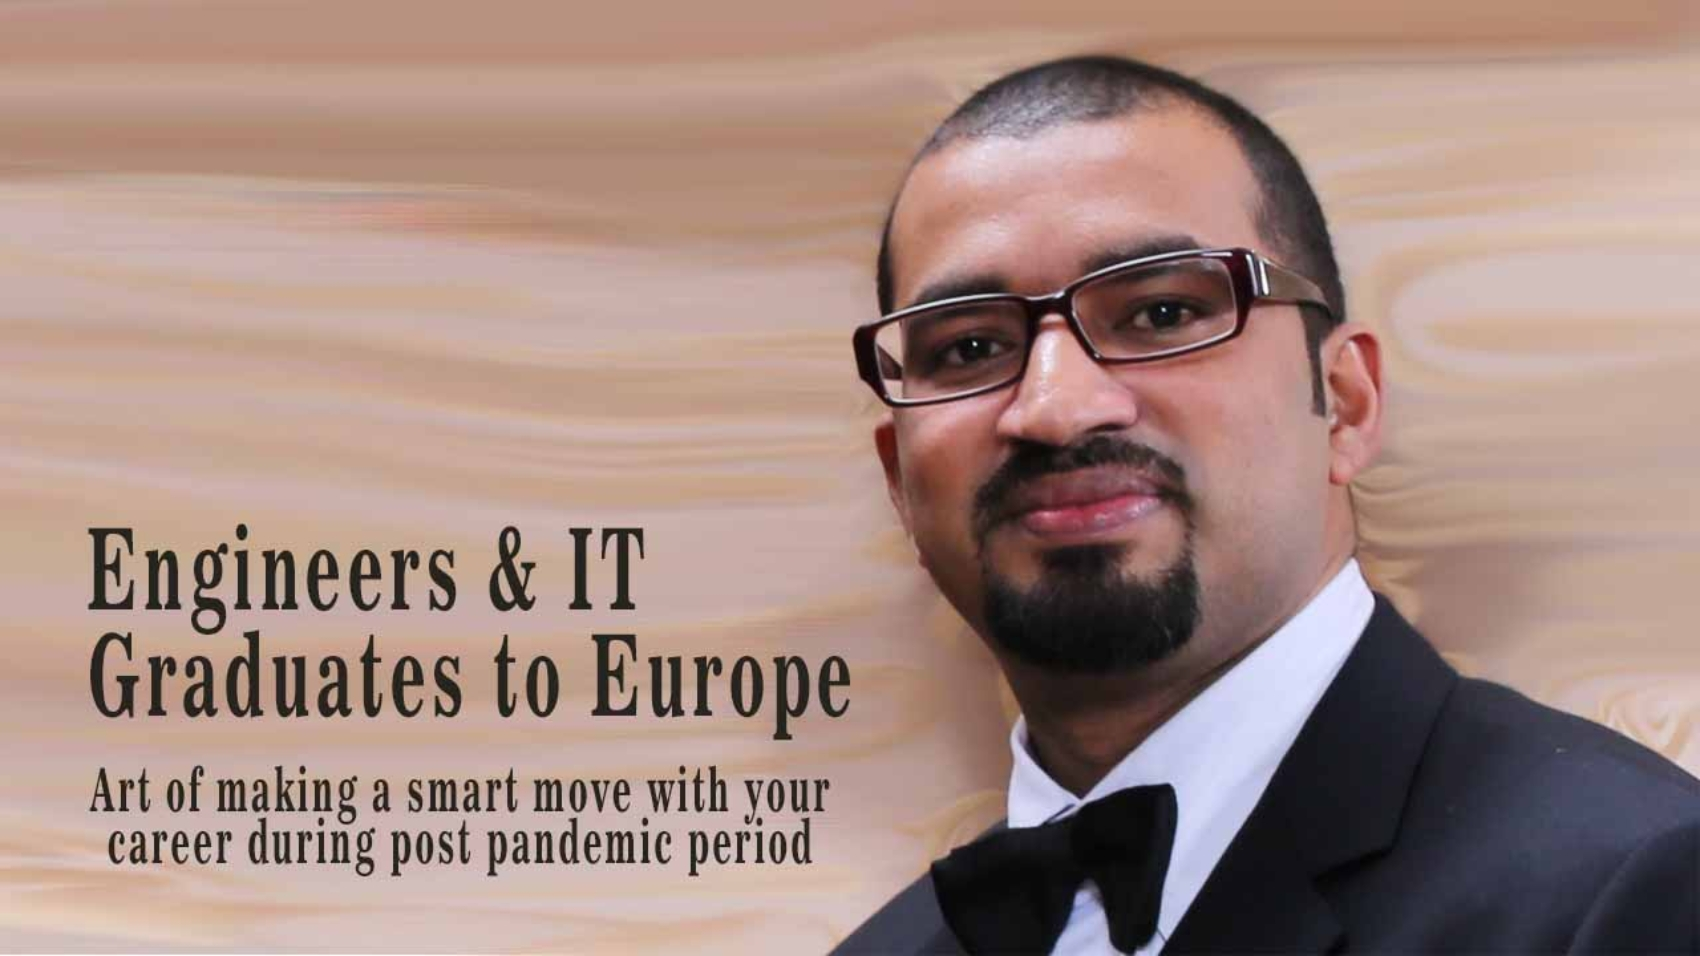 Joby Antoney article Engineers & IT Graduates to Europe: Art of making a smart move with your career during post pandemic period